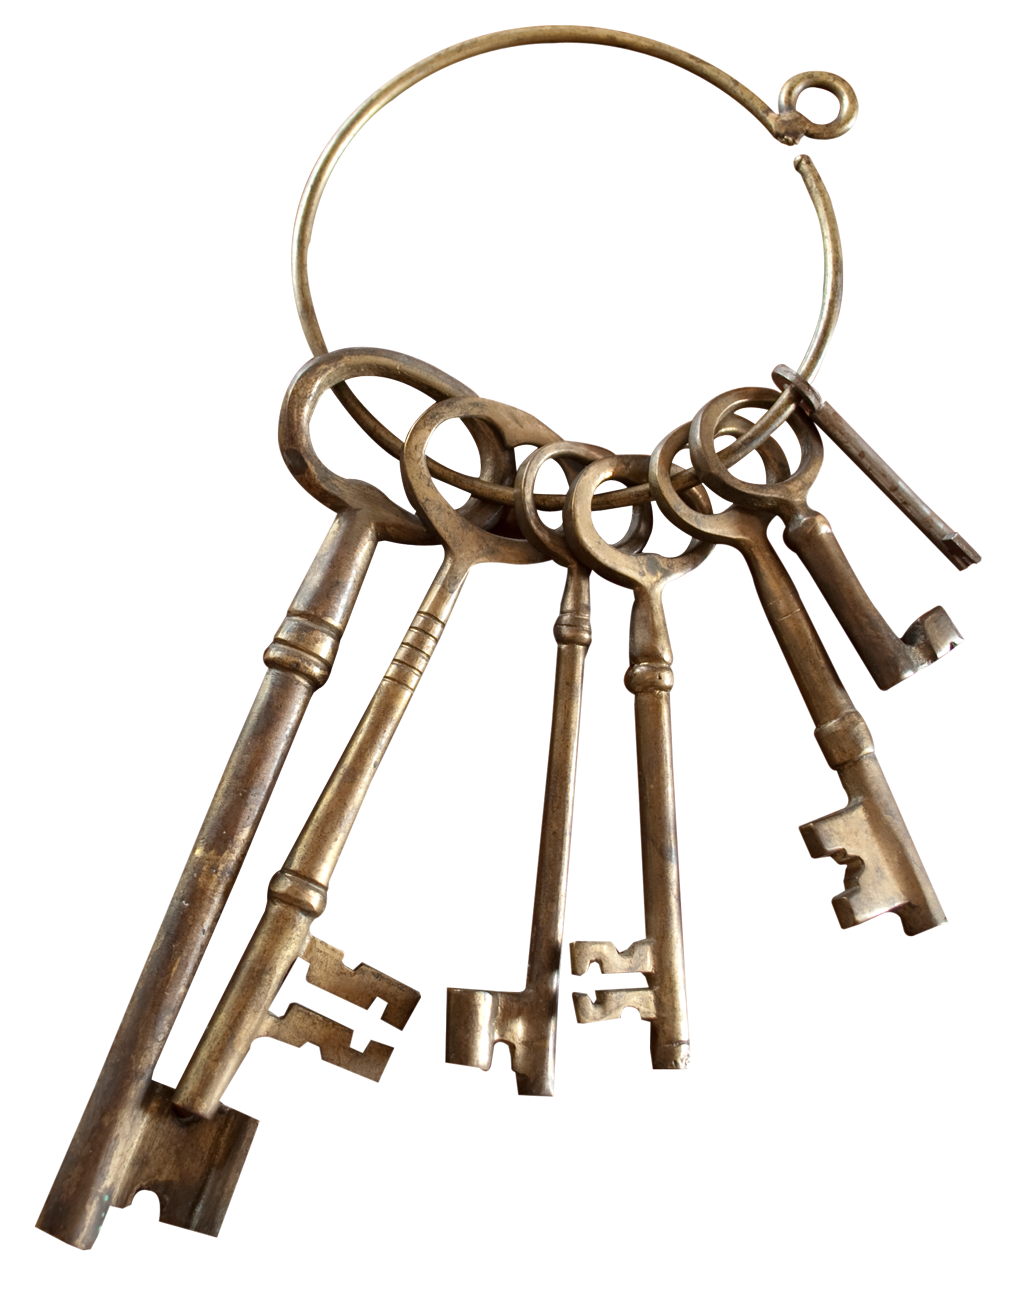 Keys png images. Transparent free download pngmart